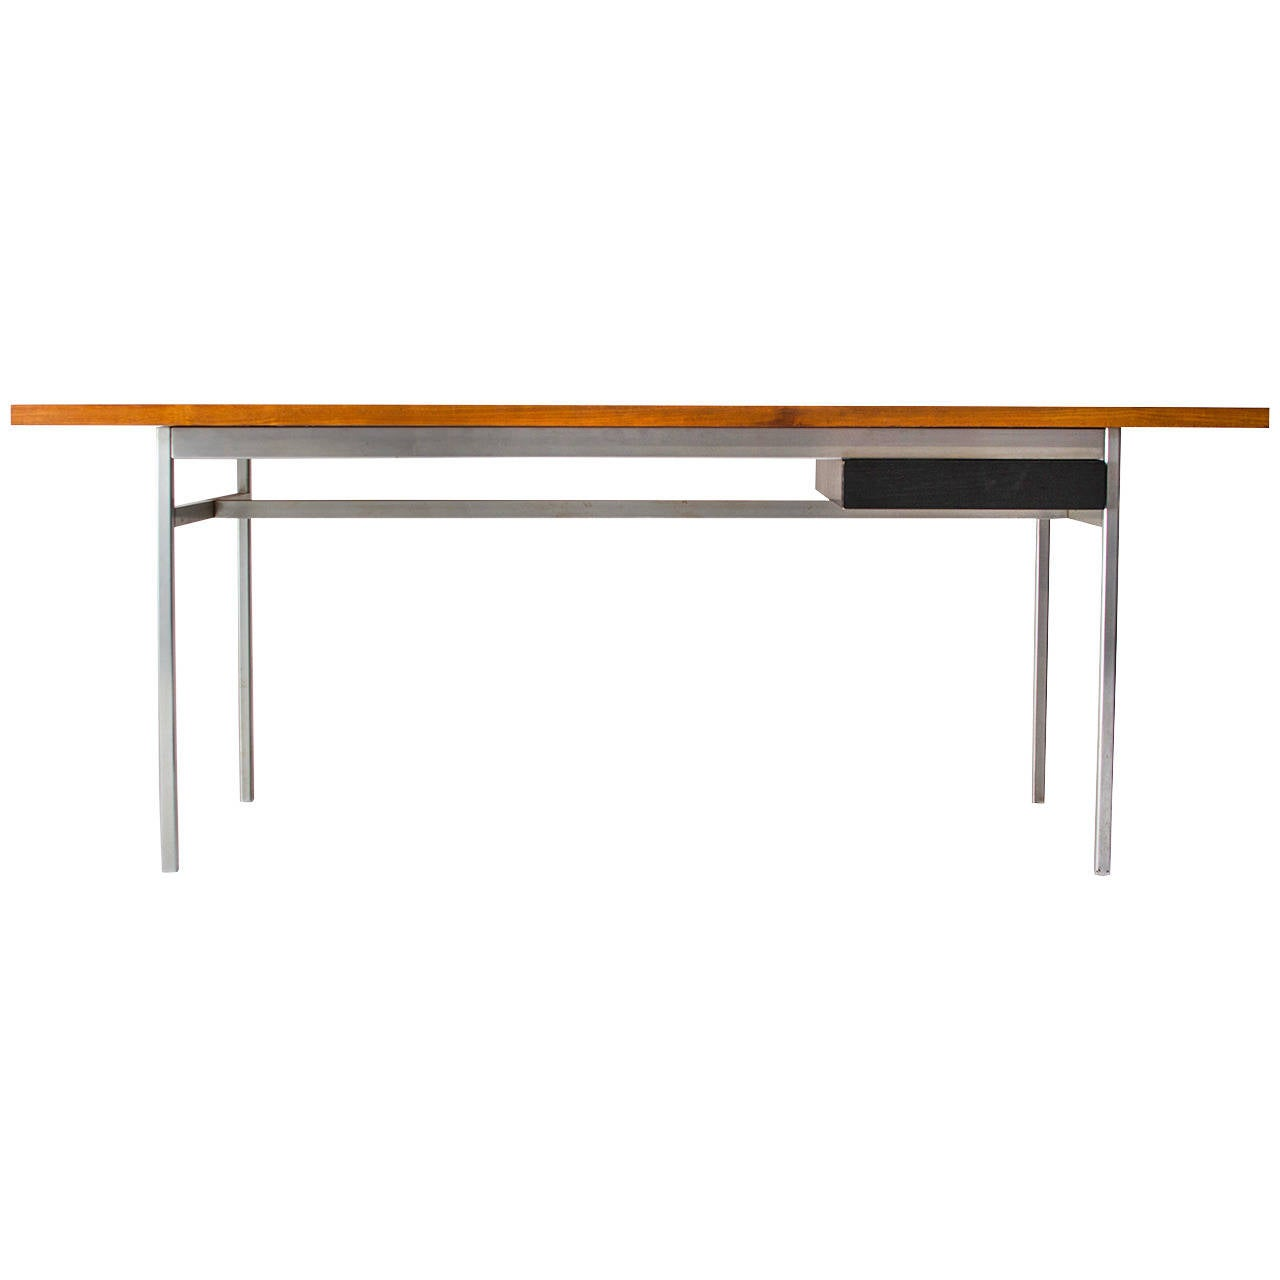 Exquisite Florence Knoll And George Nakashima Executive